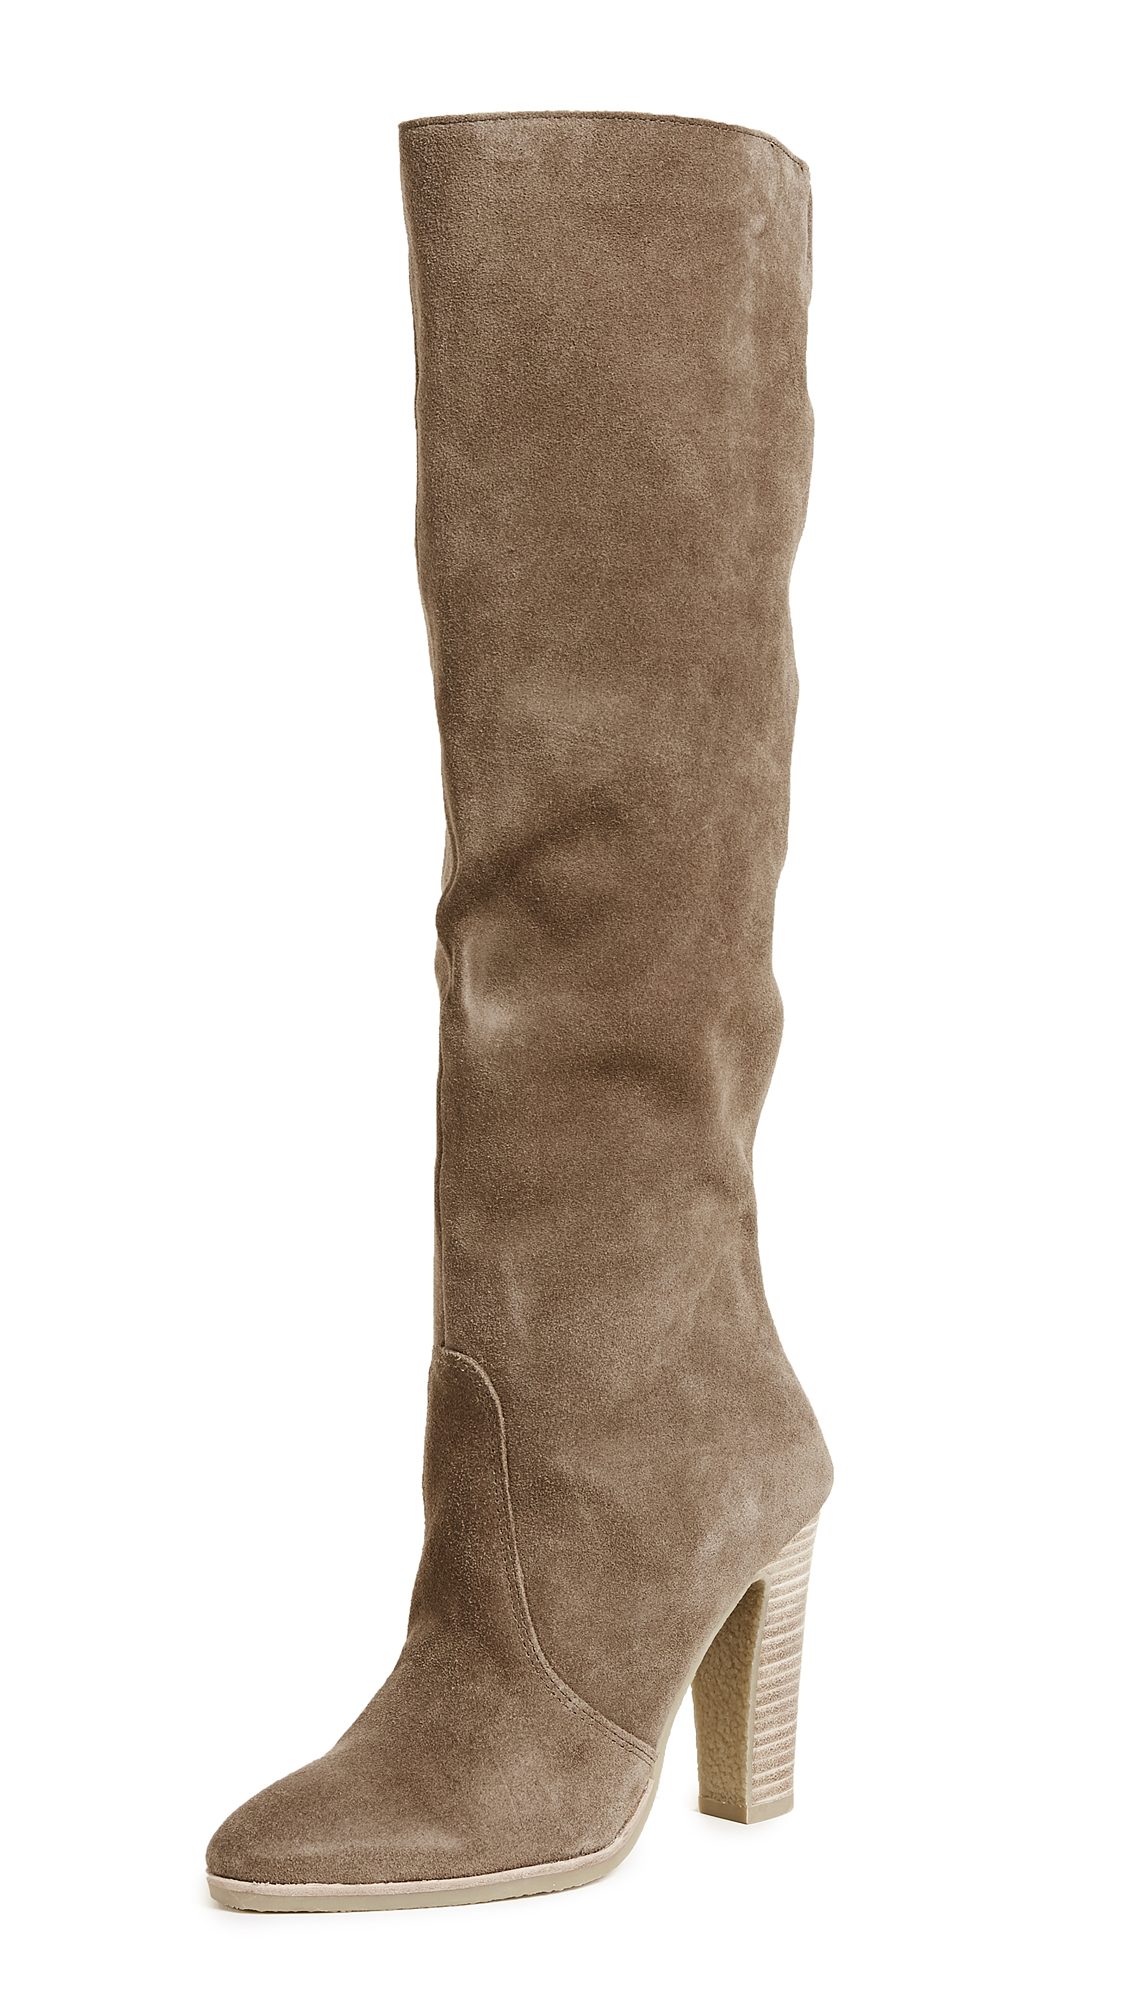 Dolce Vita Celine Knee High Stacked Heel Boots - Khaki